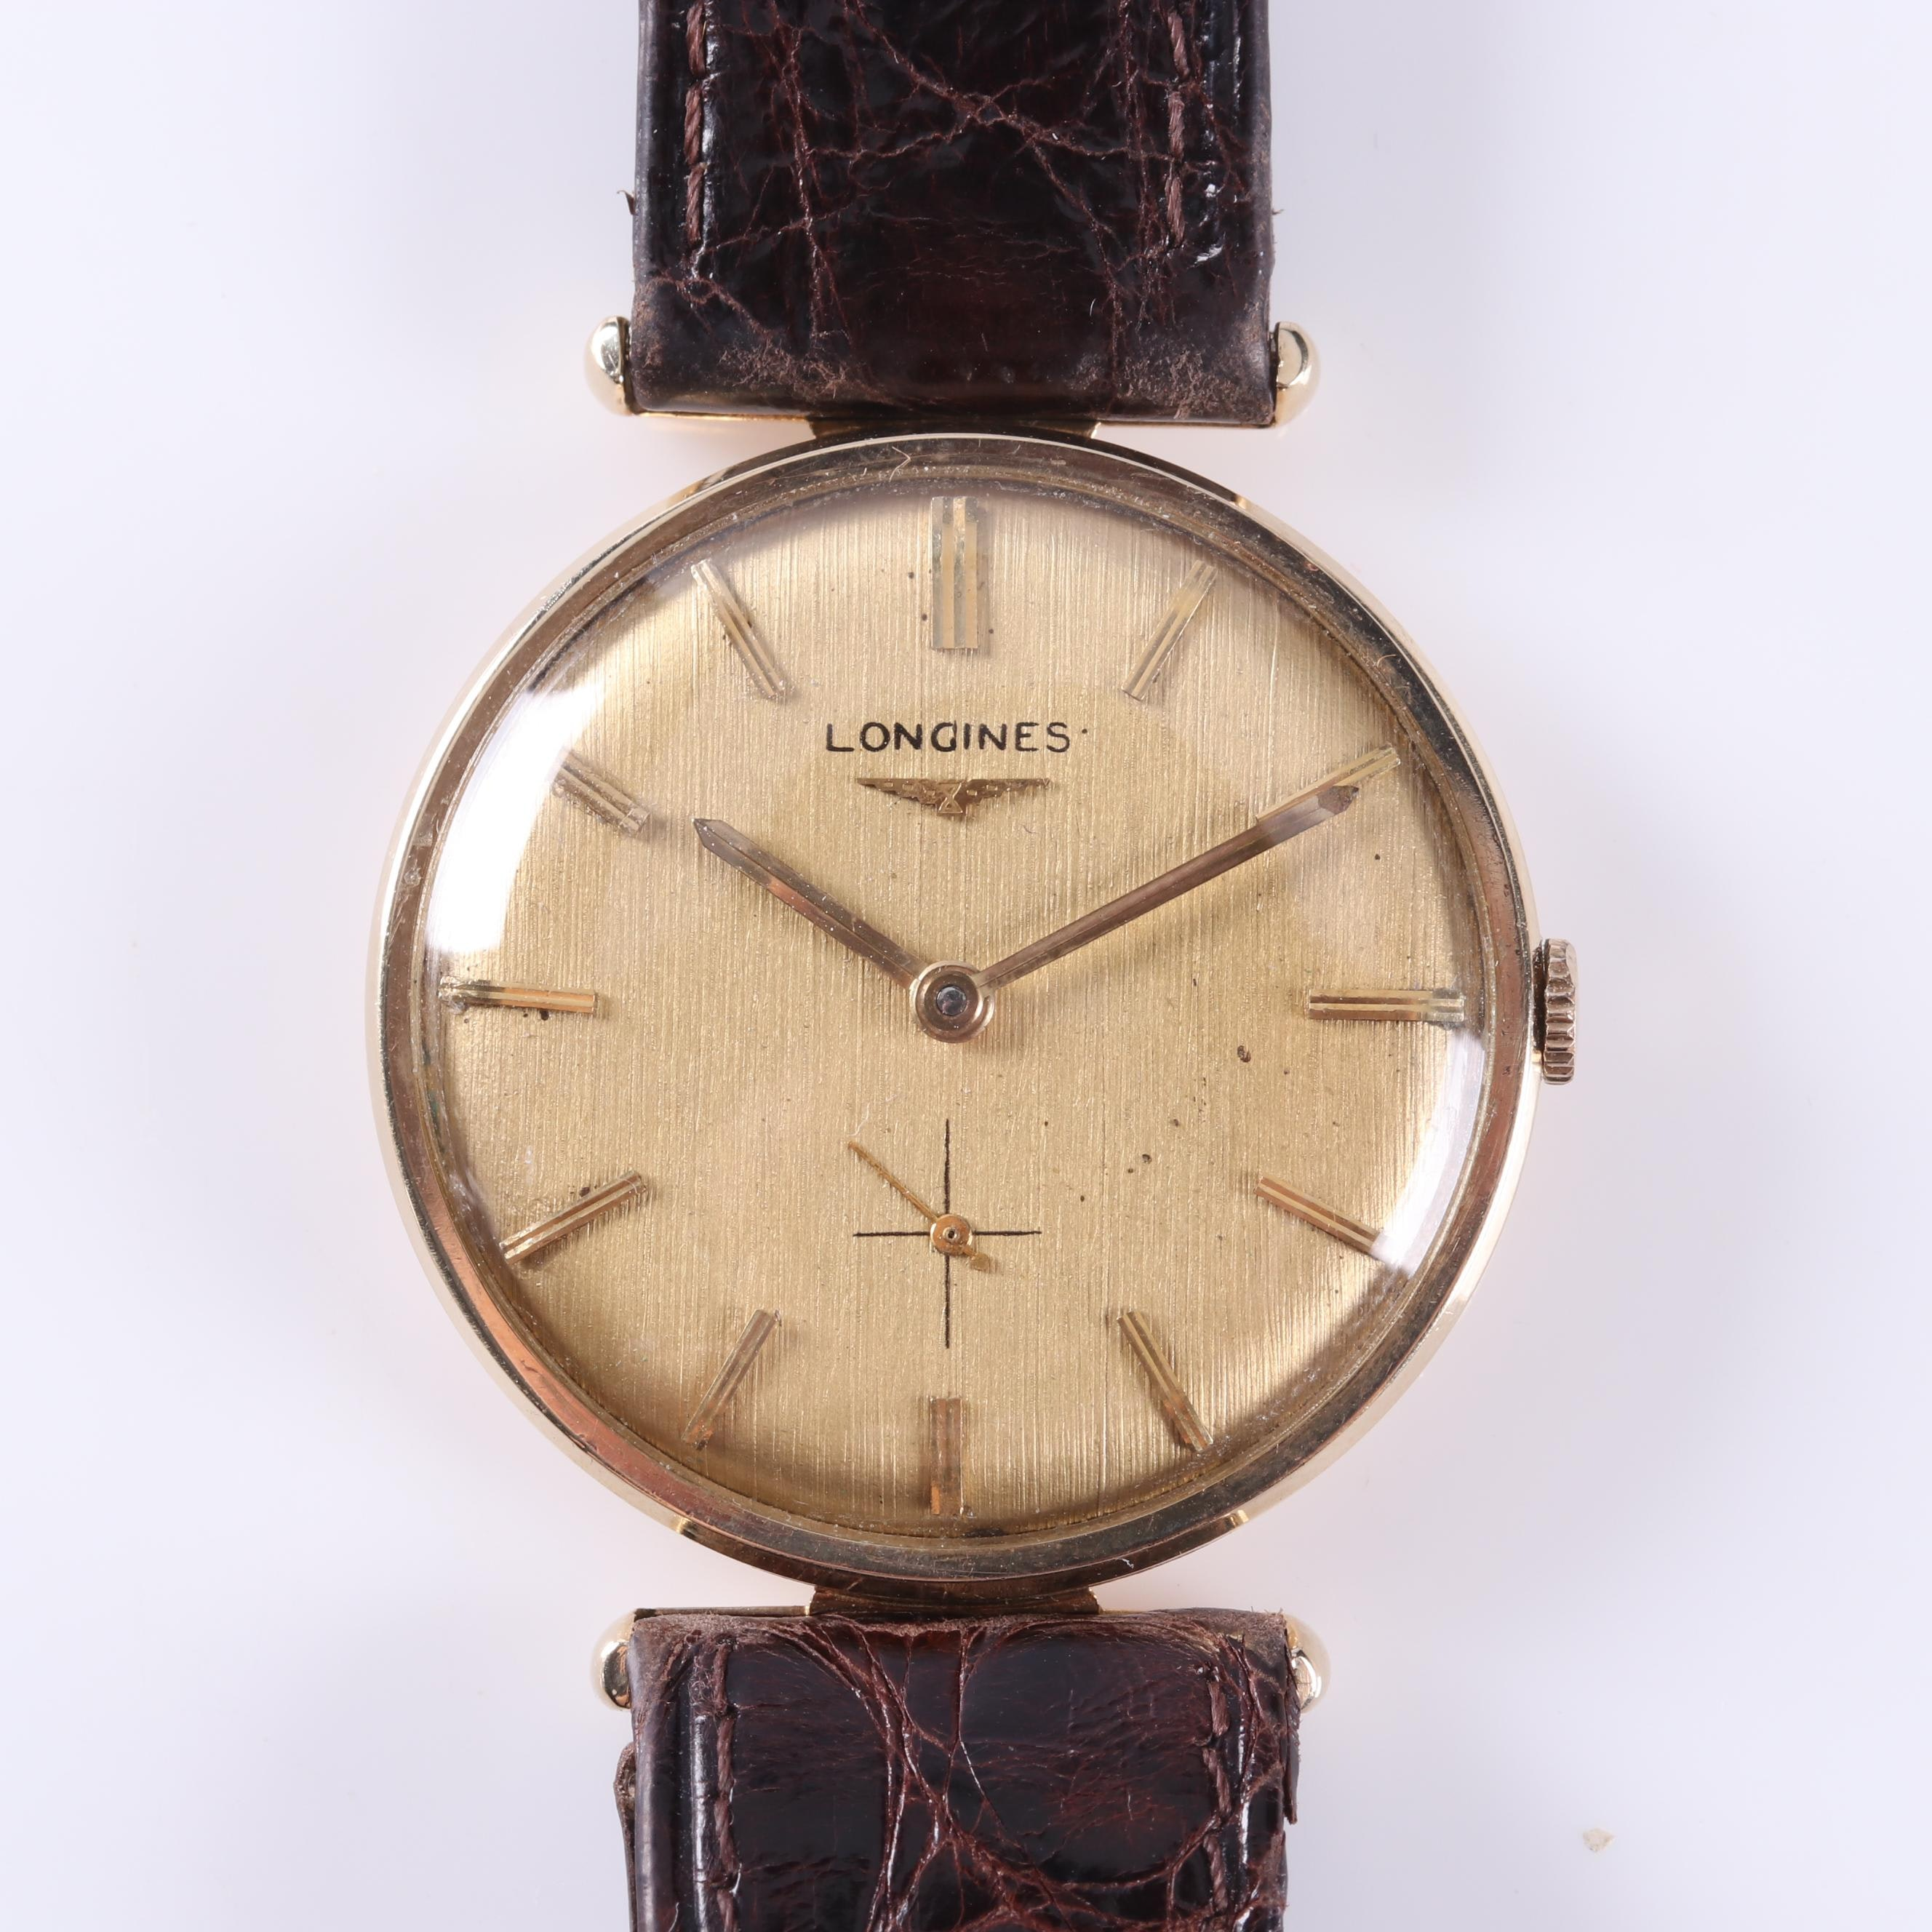 14K Yellow Gold Longines Wrist Watch